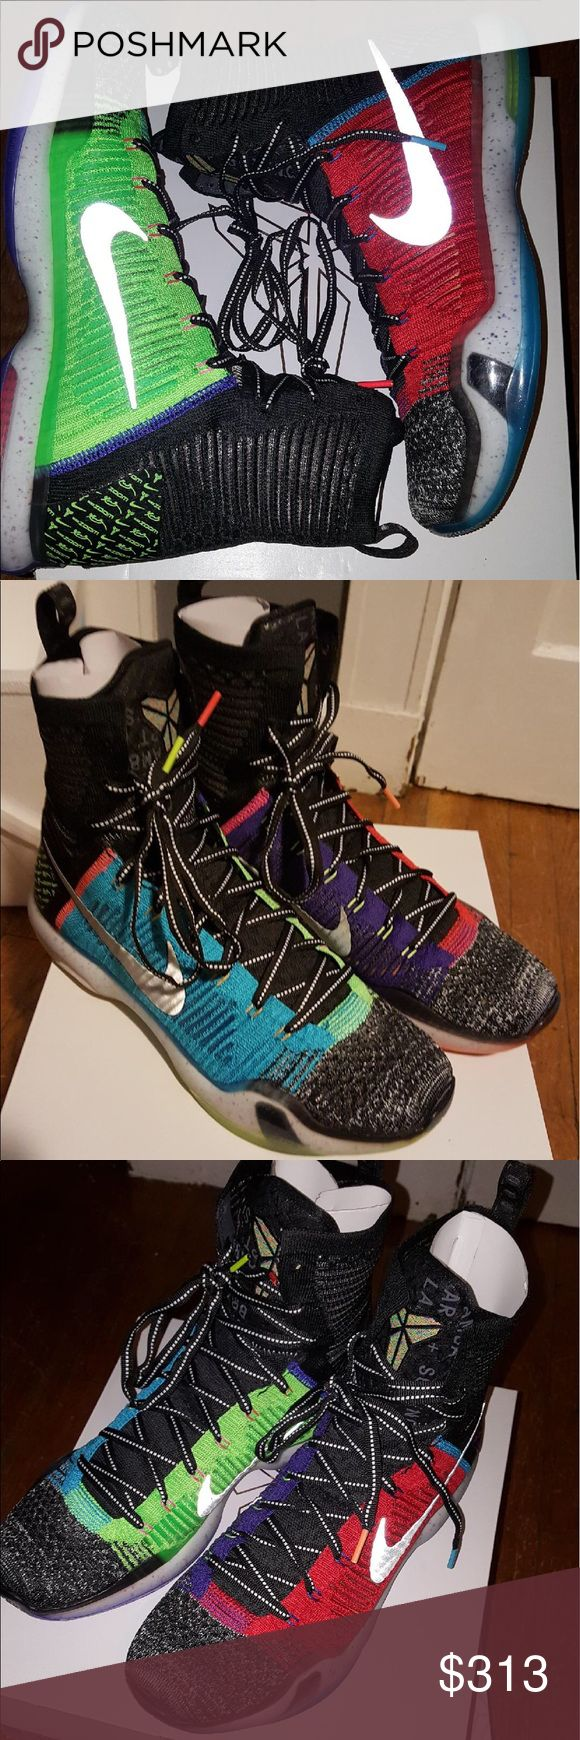 """NIKE WHAT THE KOBE SIZE 12 NEW IN BOX Selling these Nike """"What the Kobe"""" size 12. New in box-never worn. No trades. Nike Shoes Sneakers"""